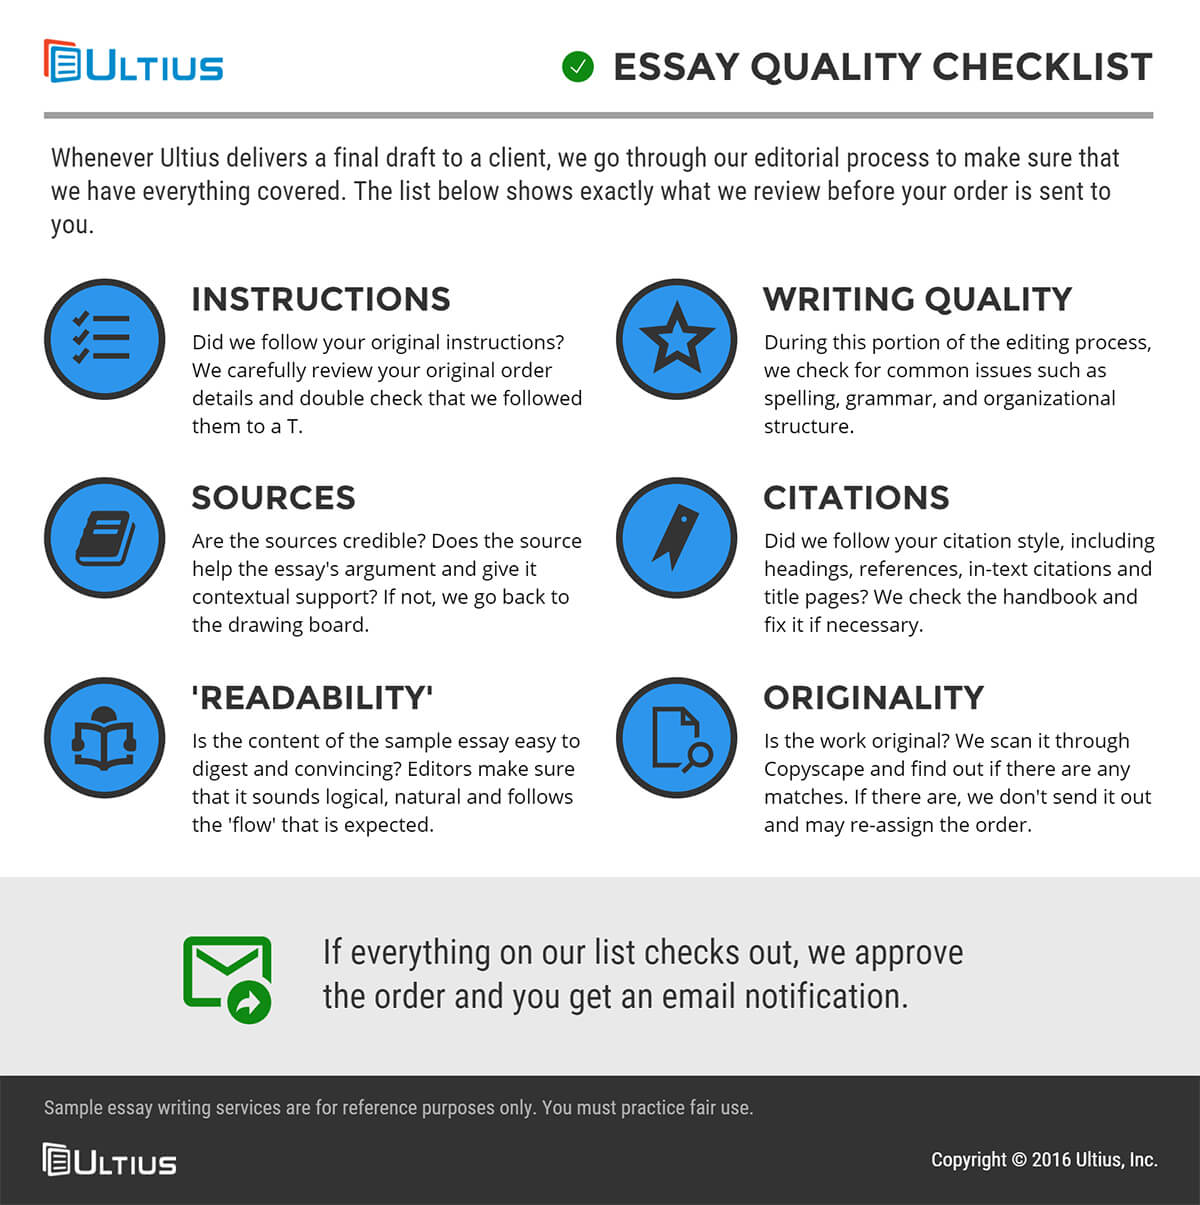 buy critical essay online 100% original made in the usa  purchased essay quality checklist